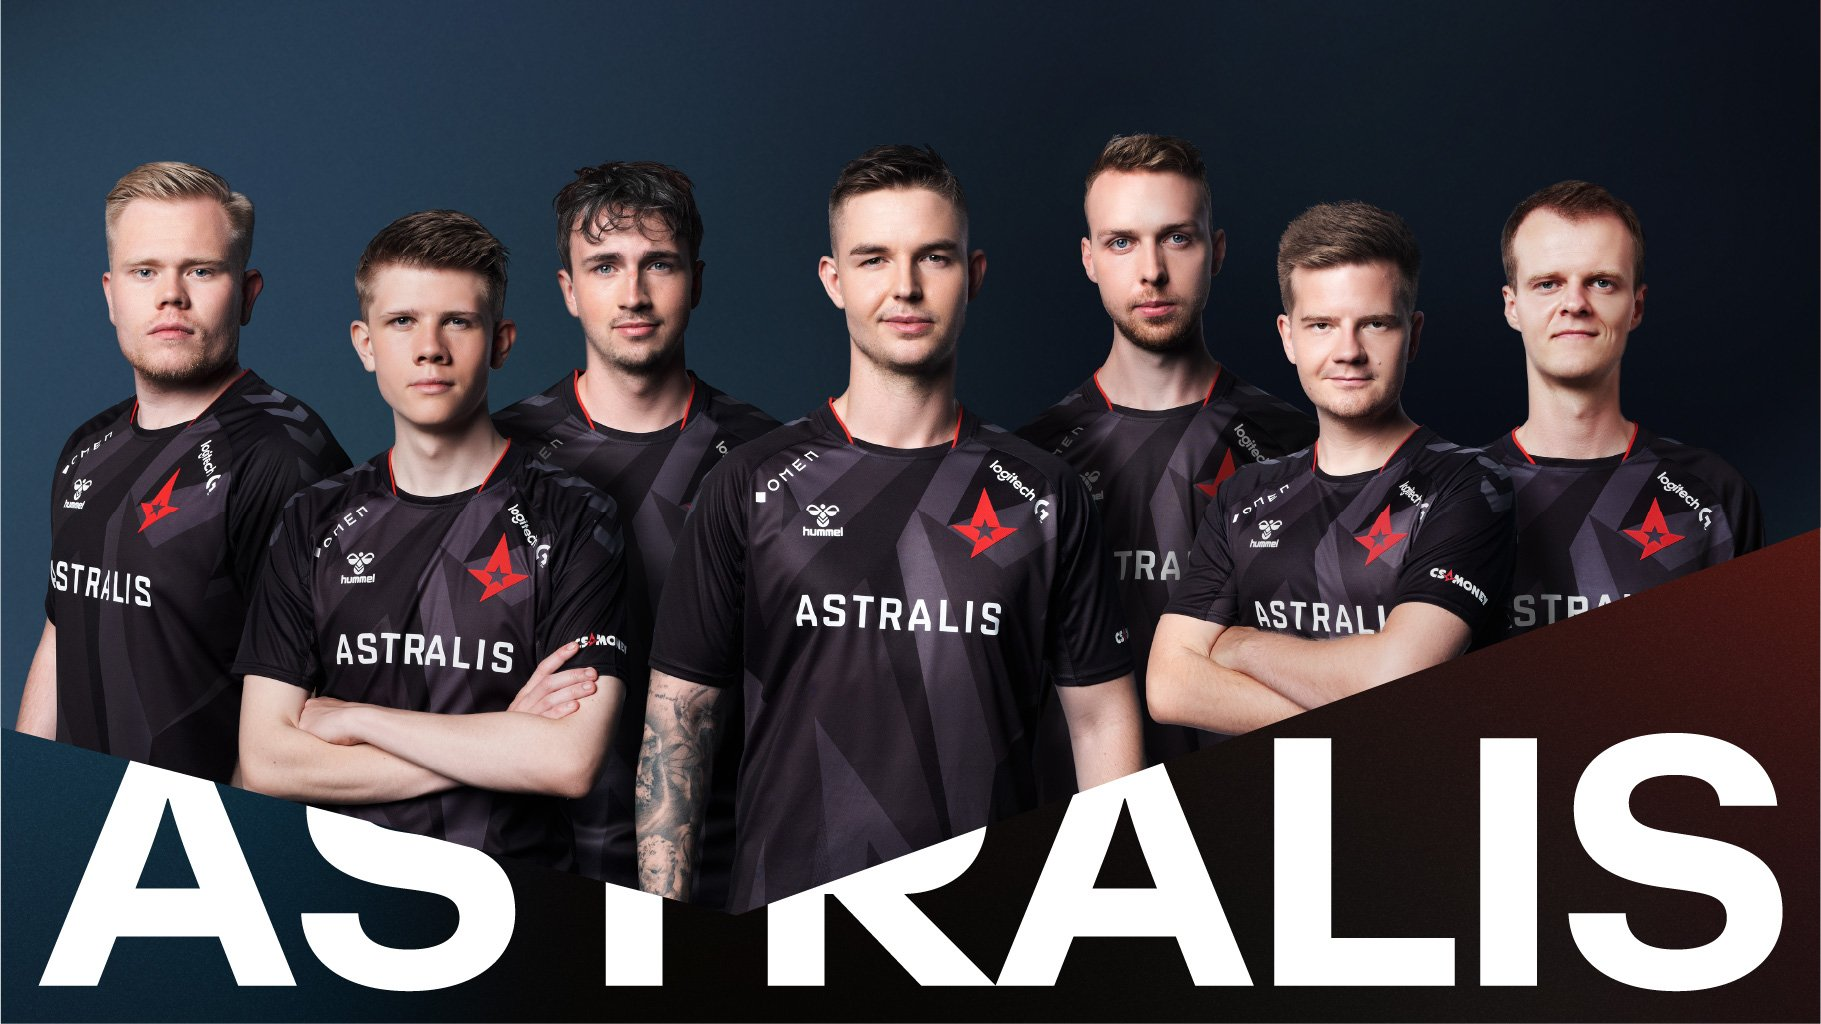 02-ASTRALIS-GRAPHIC-7-player-team-80